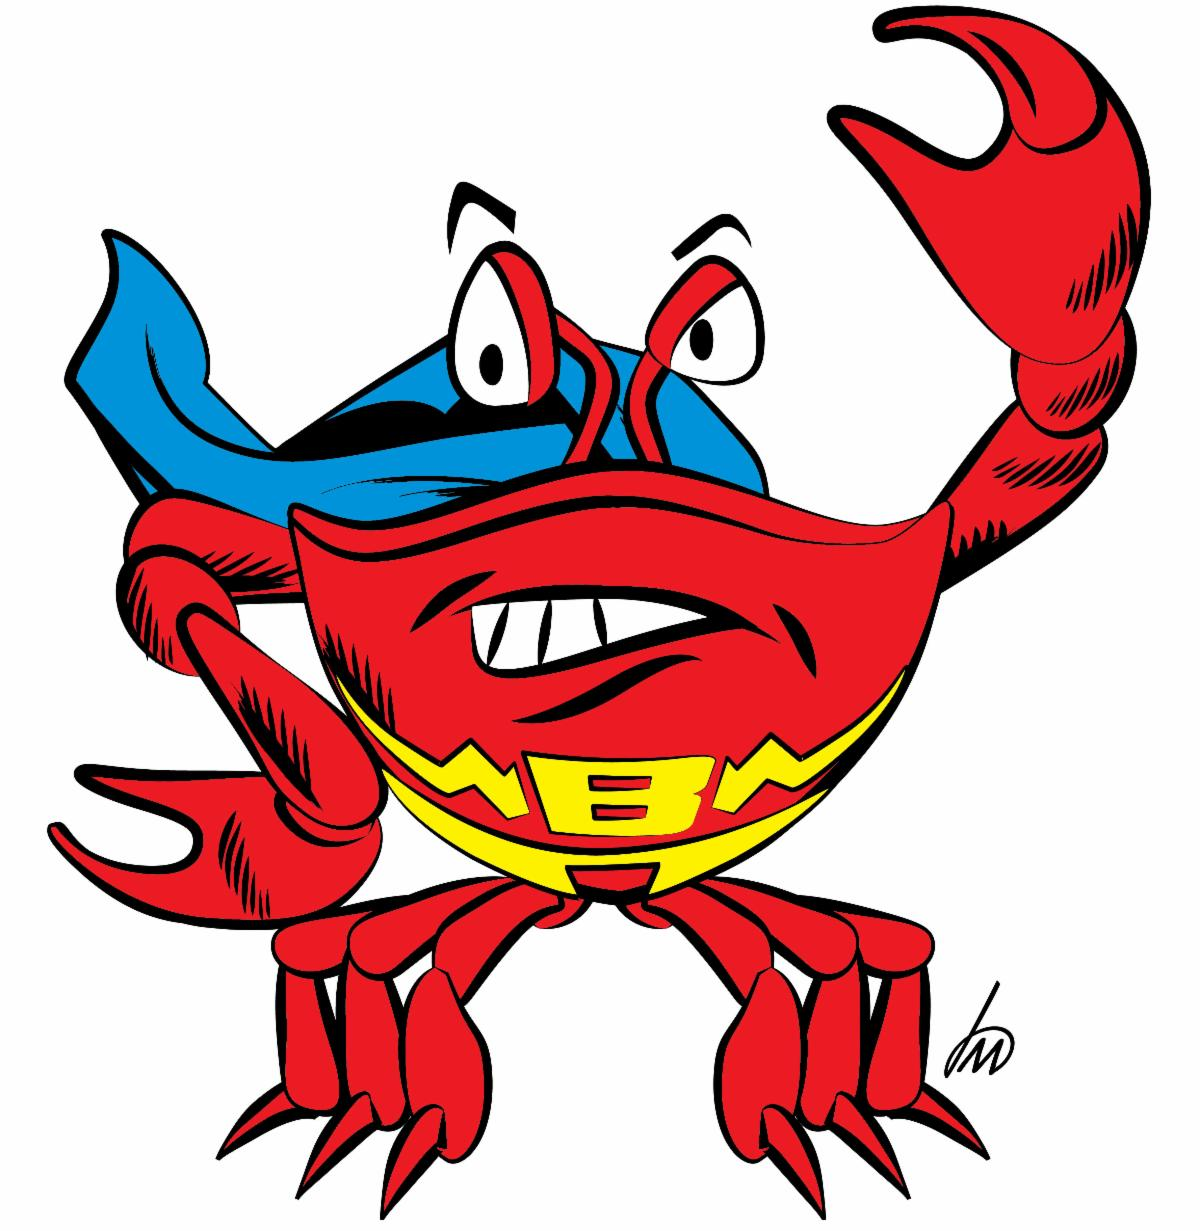 Buster Crab by Marty Baumann